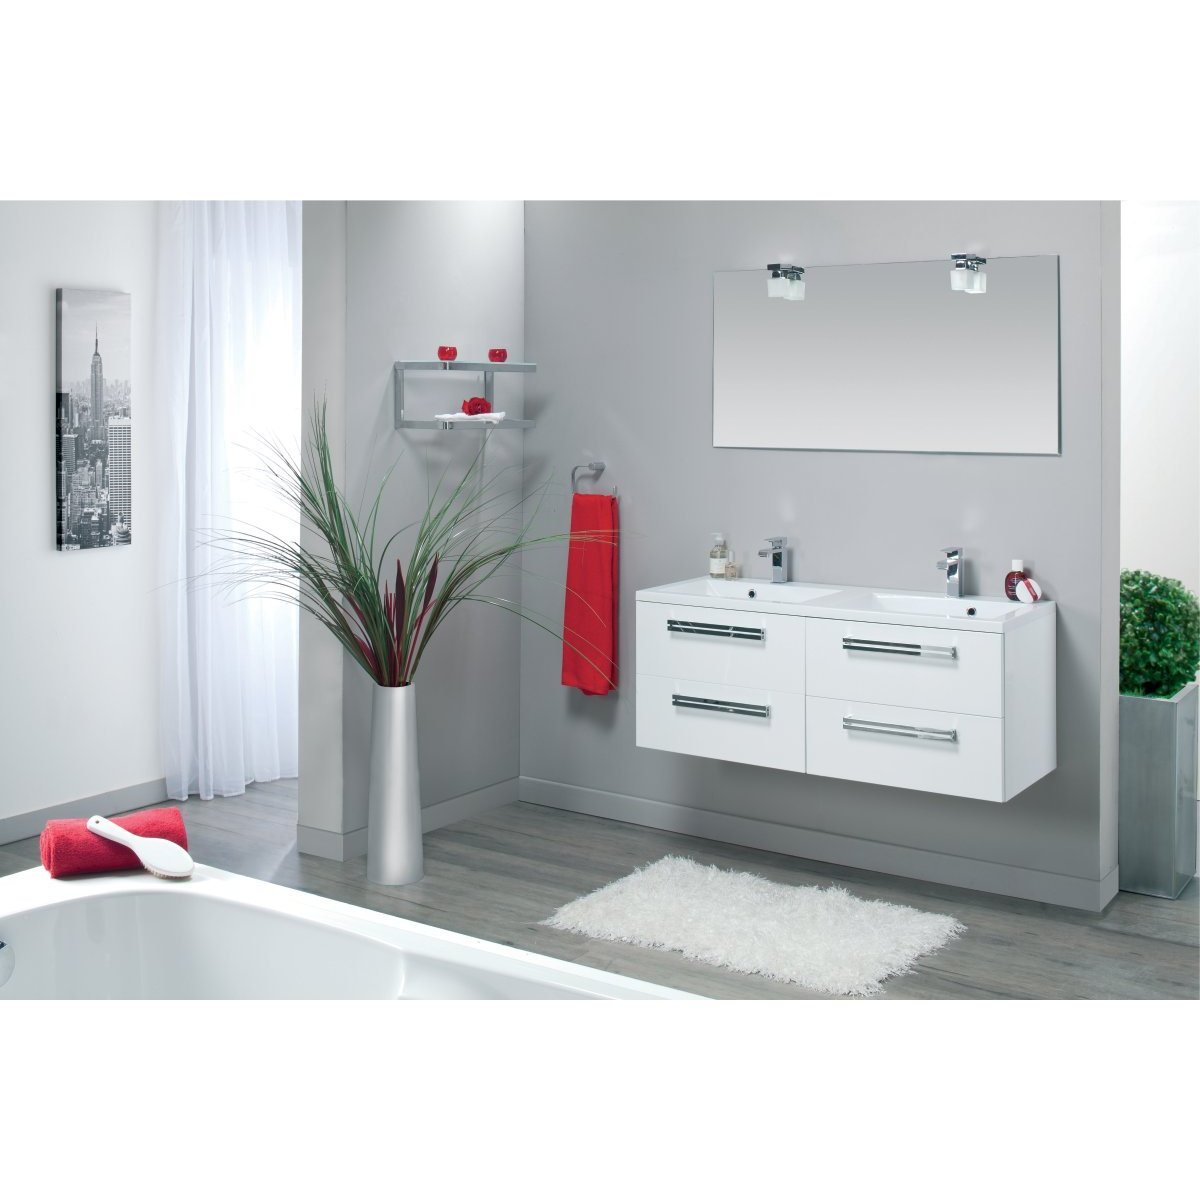 meuble sous vasque seducta 120 cm 4 tiroirs blanc brillant. Black Bedroom Furniture Sets. Home Design Ideas